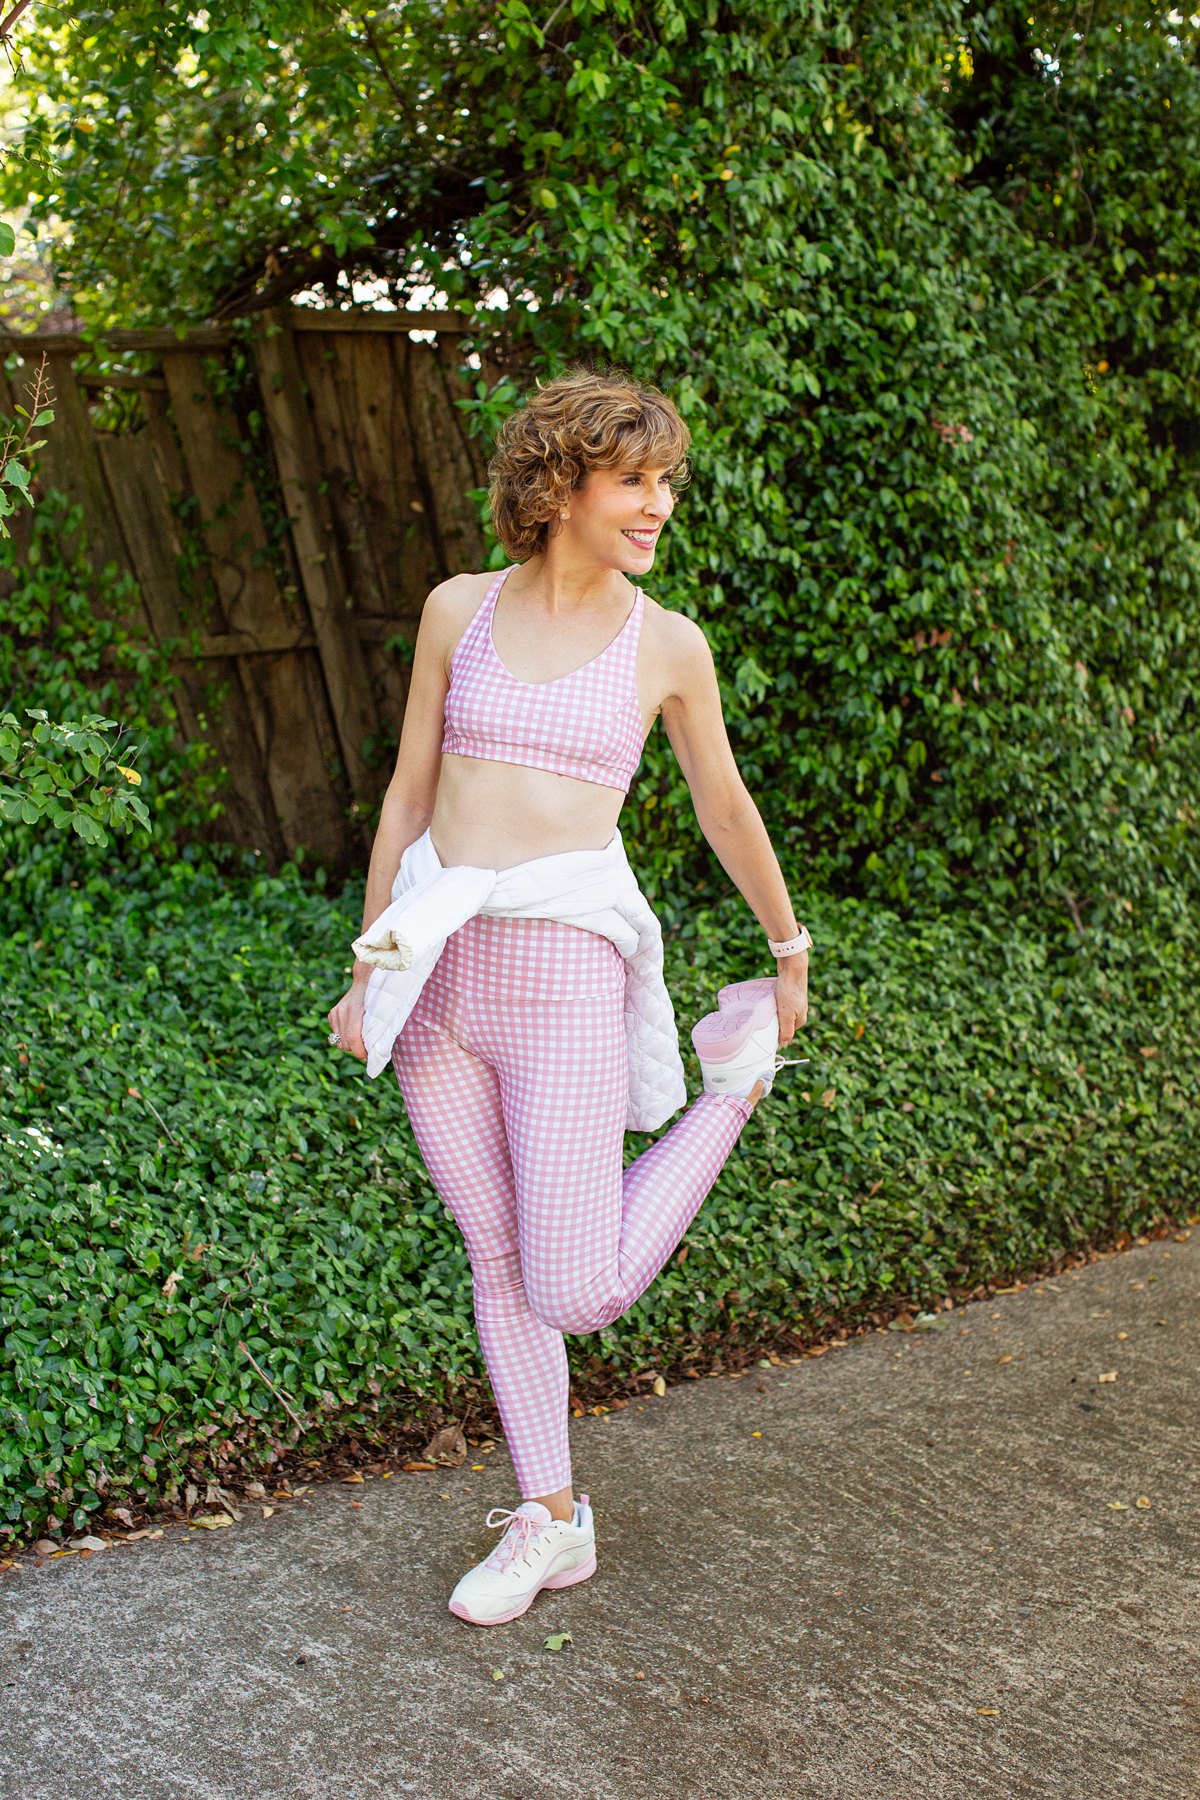 woman stretching in pink and white workout wear